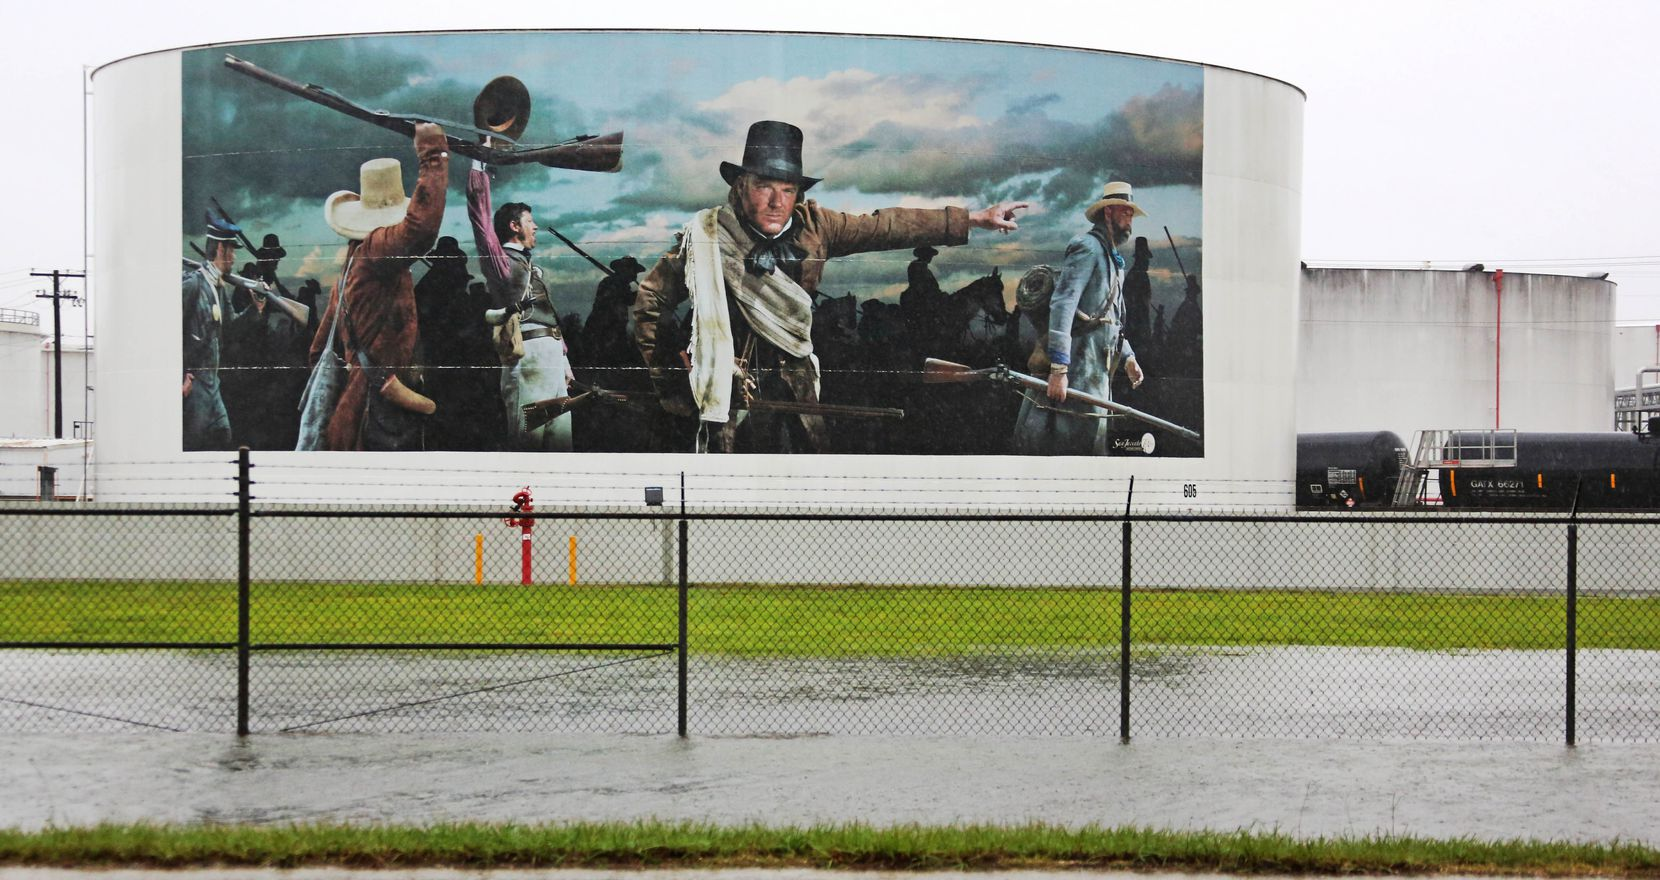 A painted oil tank bearing a painting of the Battle of San Jacinto is seen as the roadside fills up with water near the San Jacinto Monument in Houston as Hurricane Harvey spreads a wide blanket of rain southeast of Houston on Saturday, August 26, 2017.